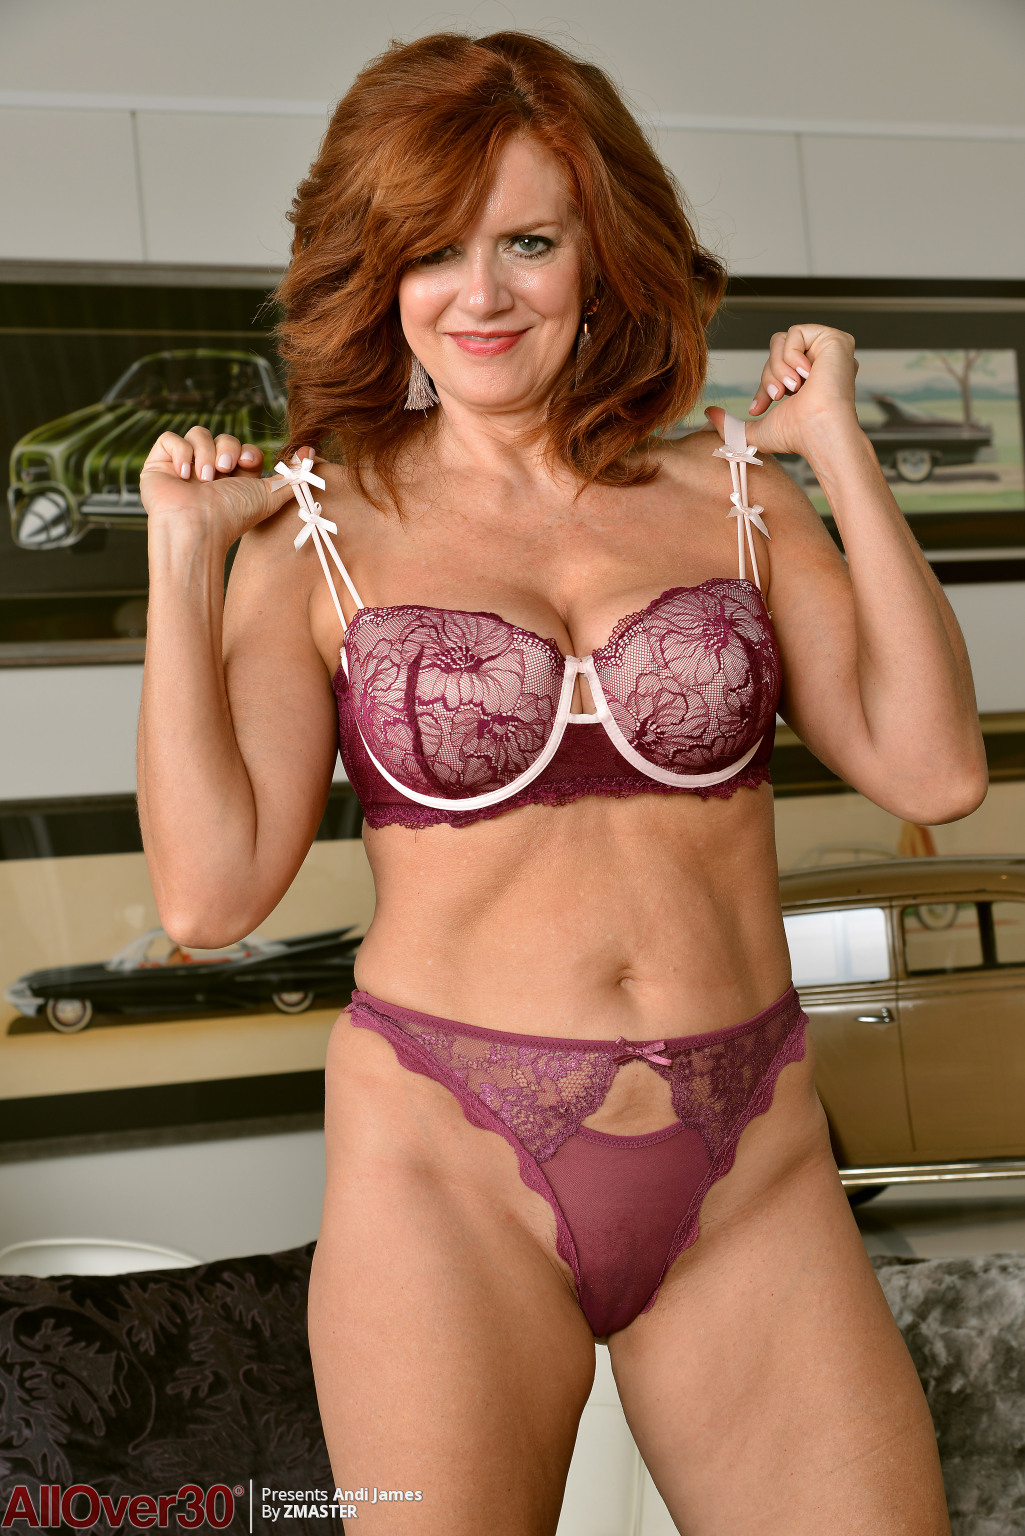 Allover30Freecom- Hot Older Women - 53 Year Old Andi -6863